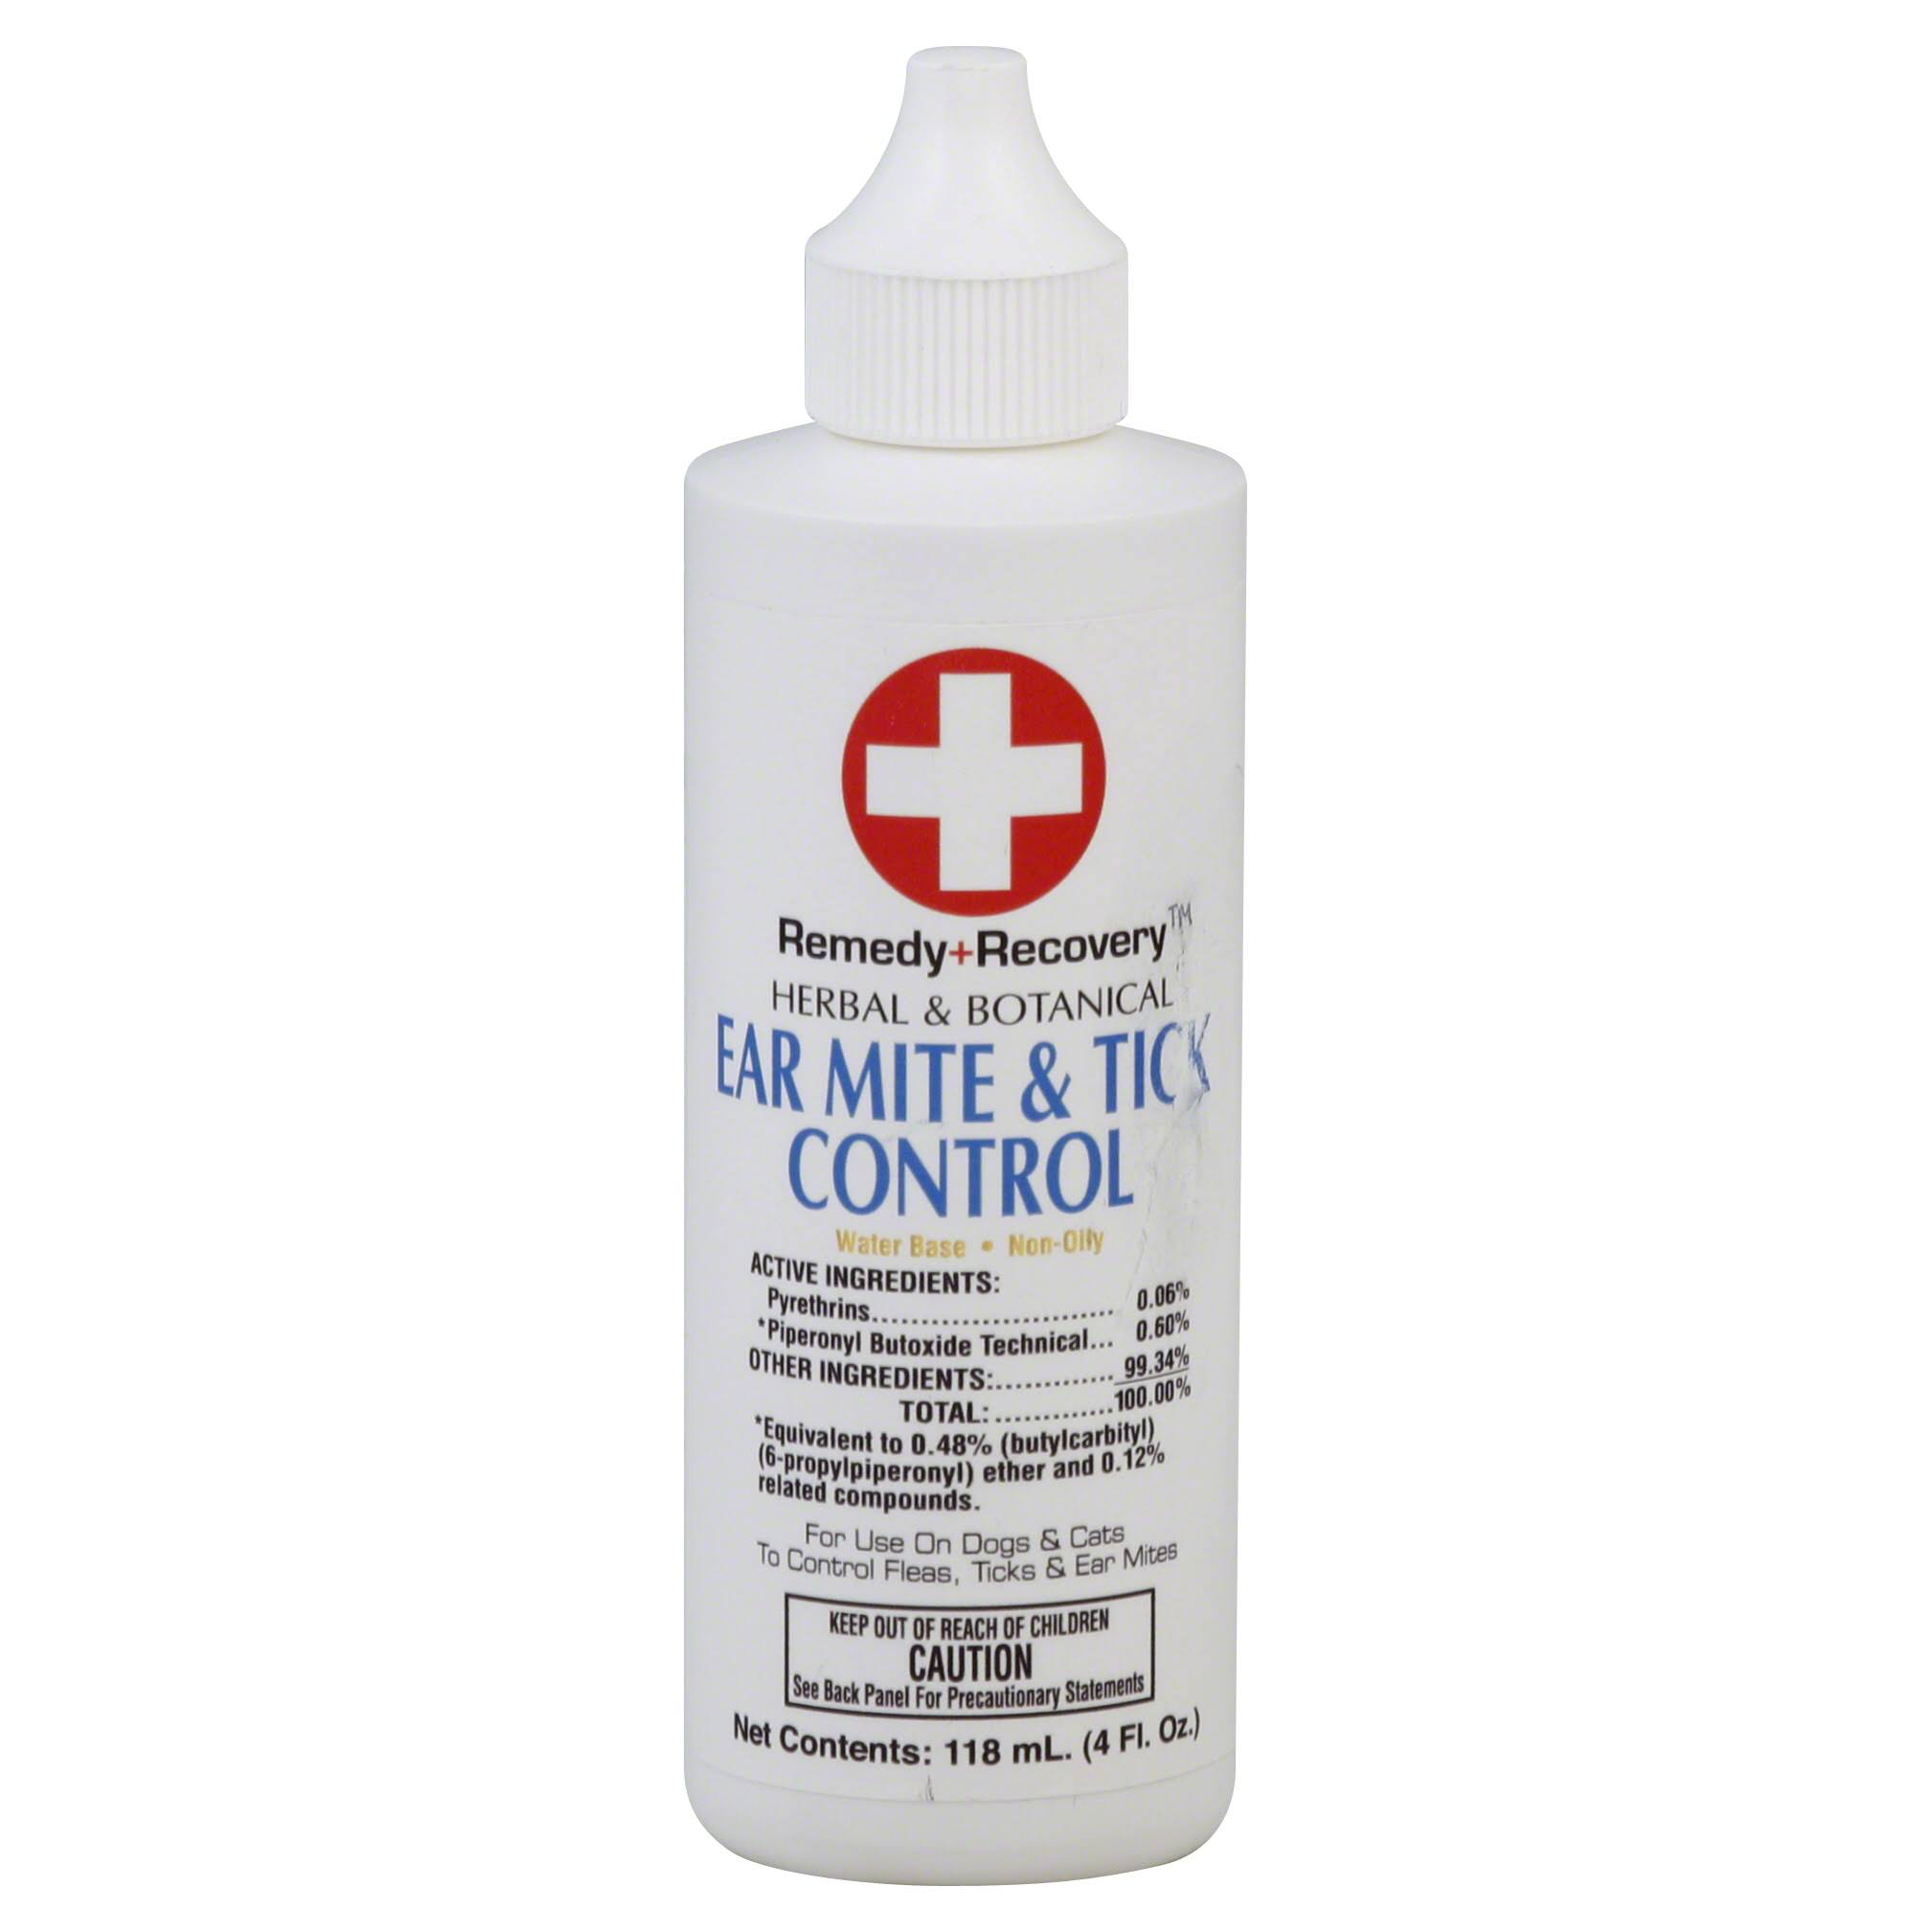 Remedy Recovery Gold Medal Dog and Cat Ear Mite and Tick Control - 4oz